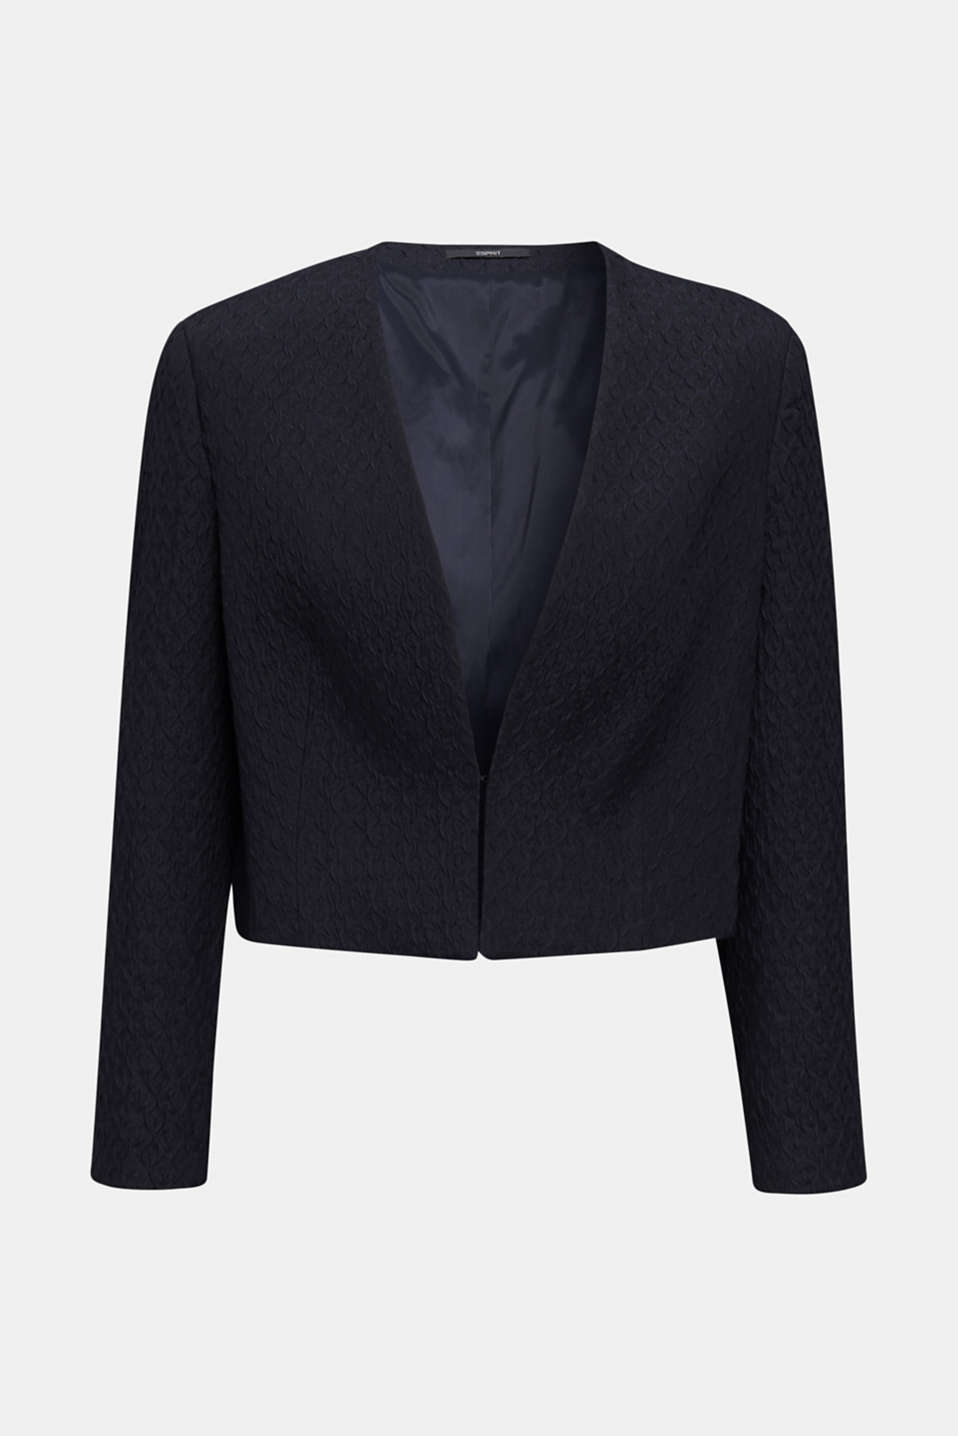 Textured woven bolero, NAVY, detail image number 7